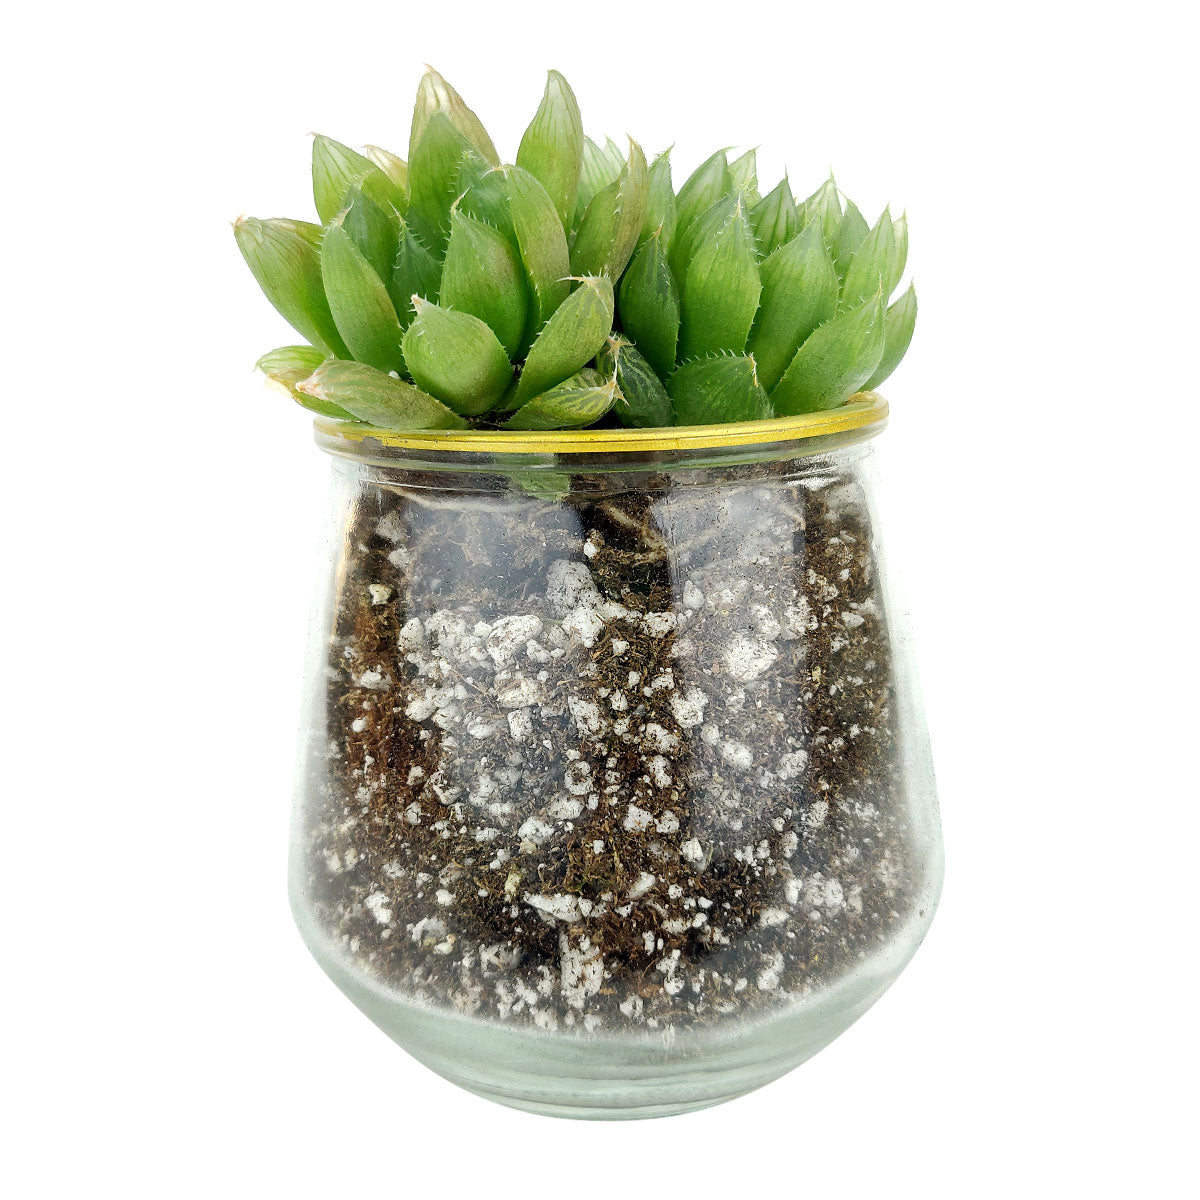 Pot for sale, Mini pot for succulent, Succulent pot decor ideas, Clear Gold Rim Pot, Flower pot for sale, glass pots for planting, succulent gift for holiday